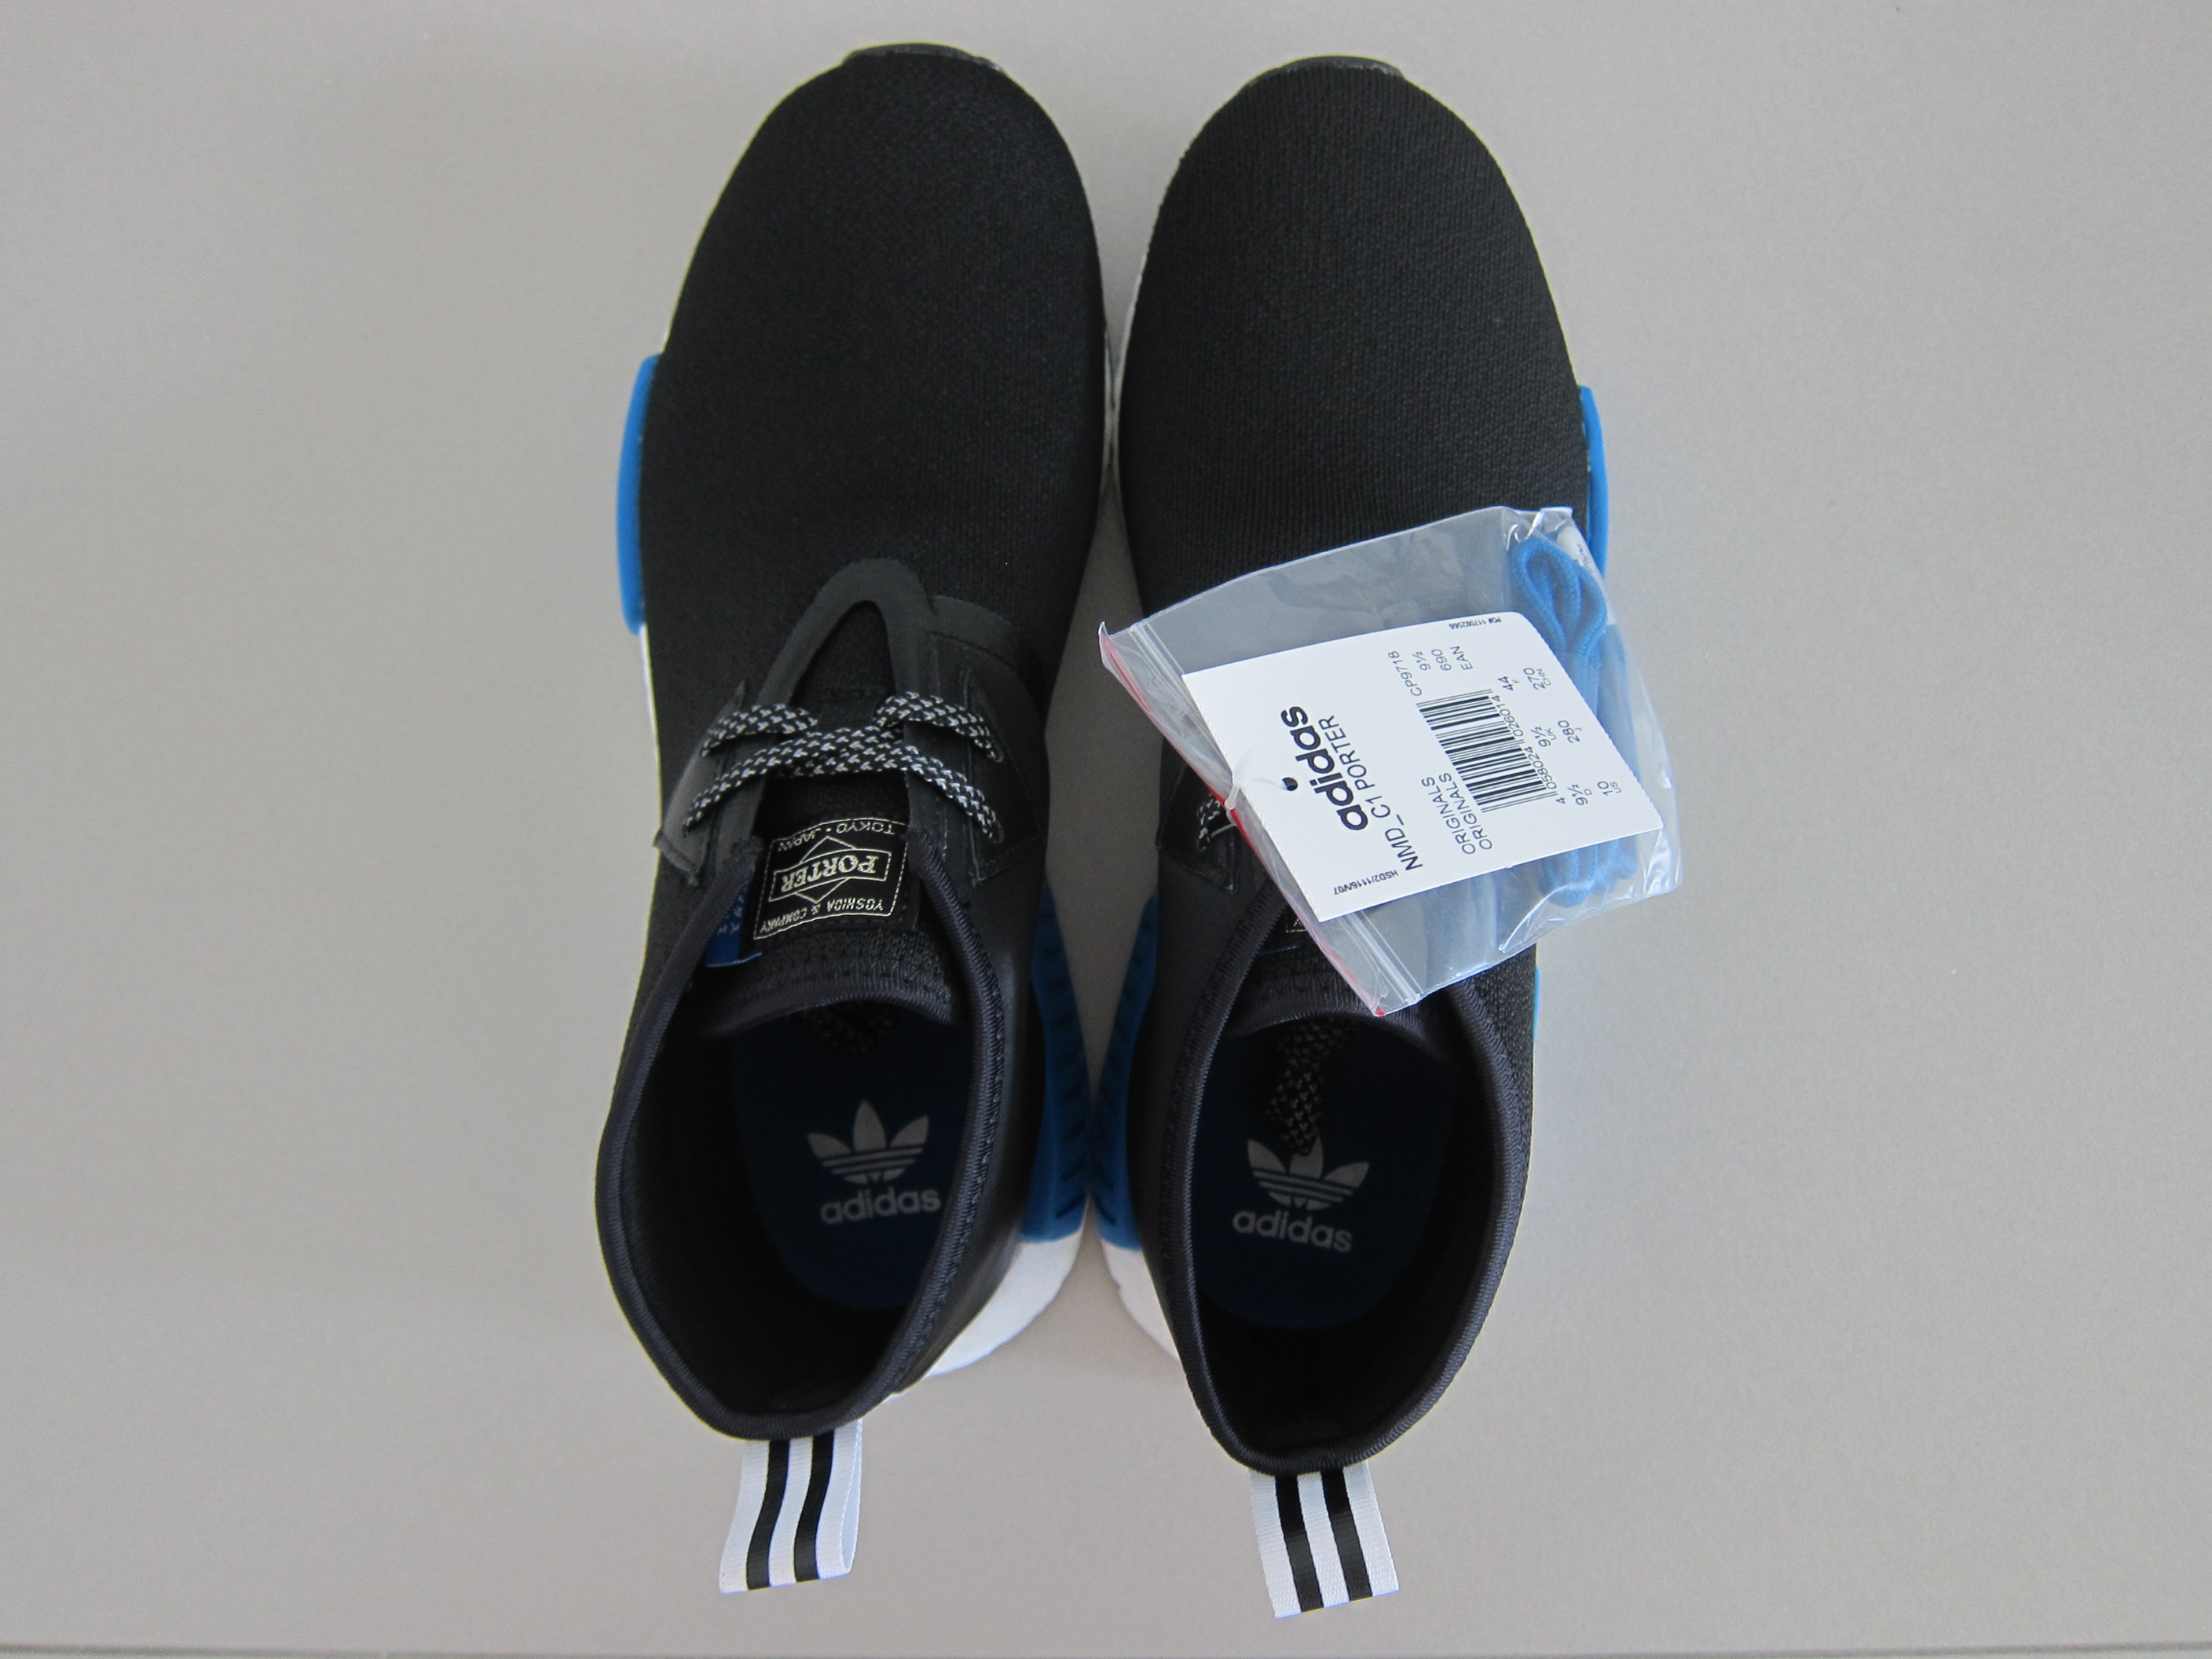 Cheap Adidas NMD R1 Runner Sneaker Villa Exclusivo Talla 11